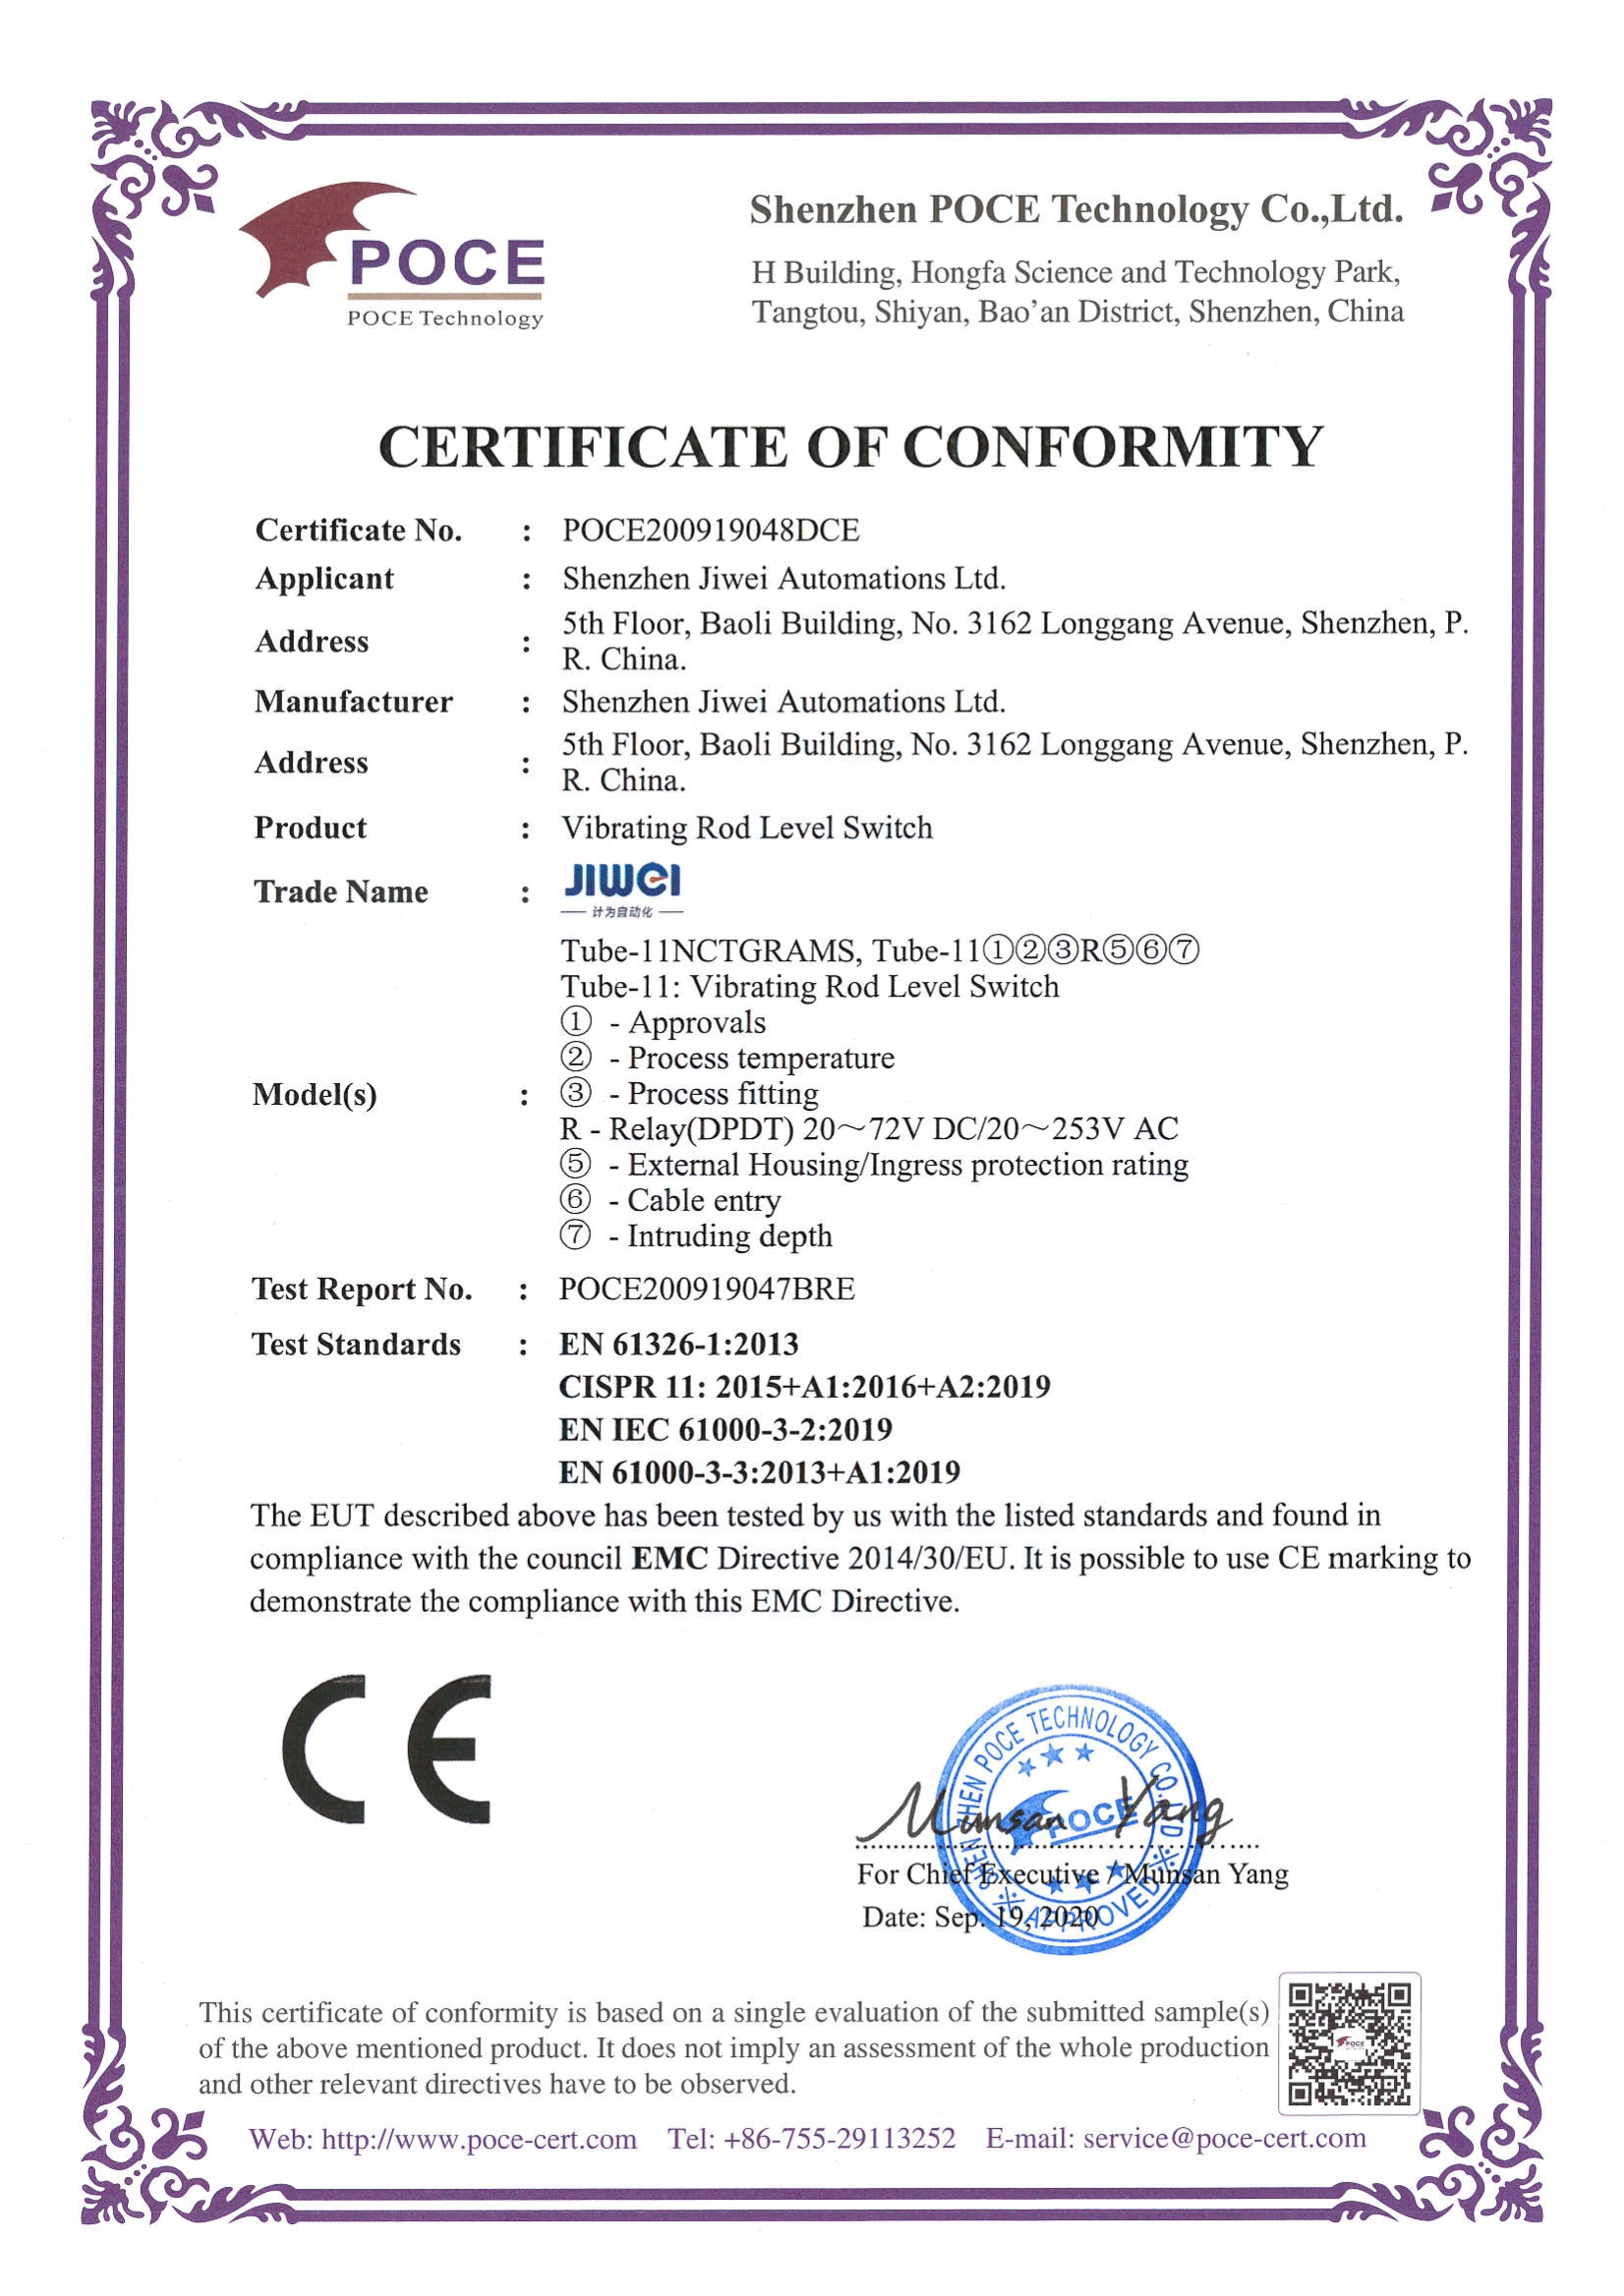 CE Certification (EMC)-Tube-11 Vibrating Rod Level Switch (Relay-none explosion hazards)